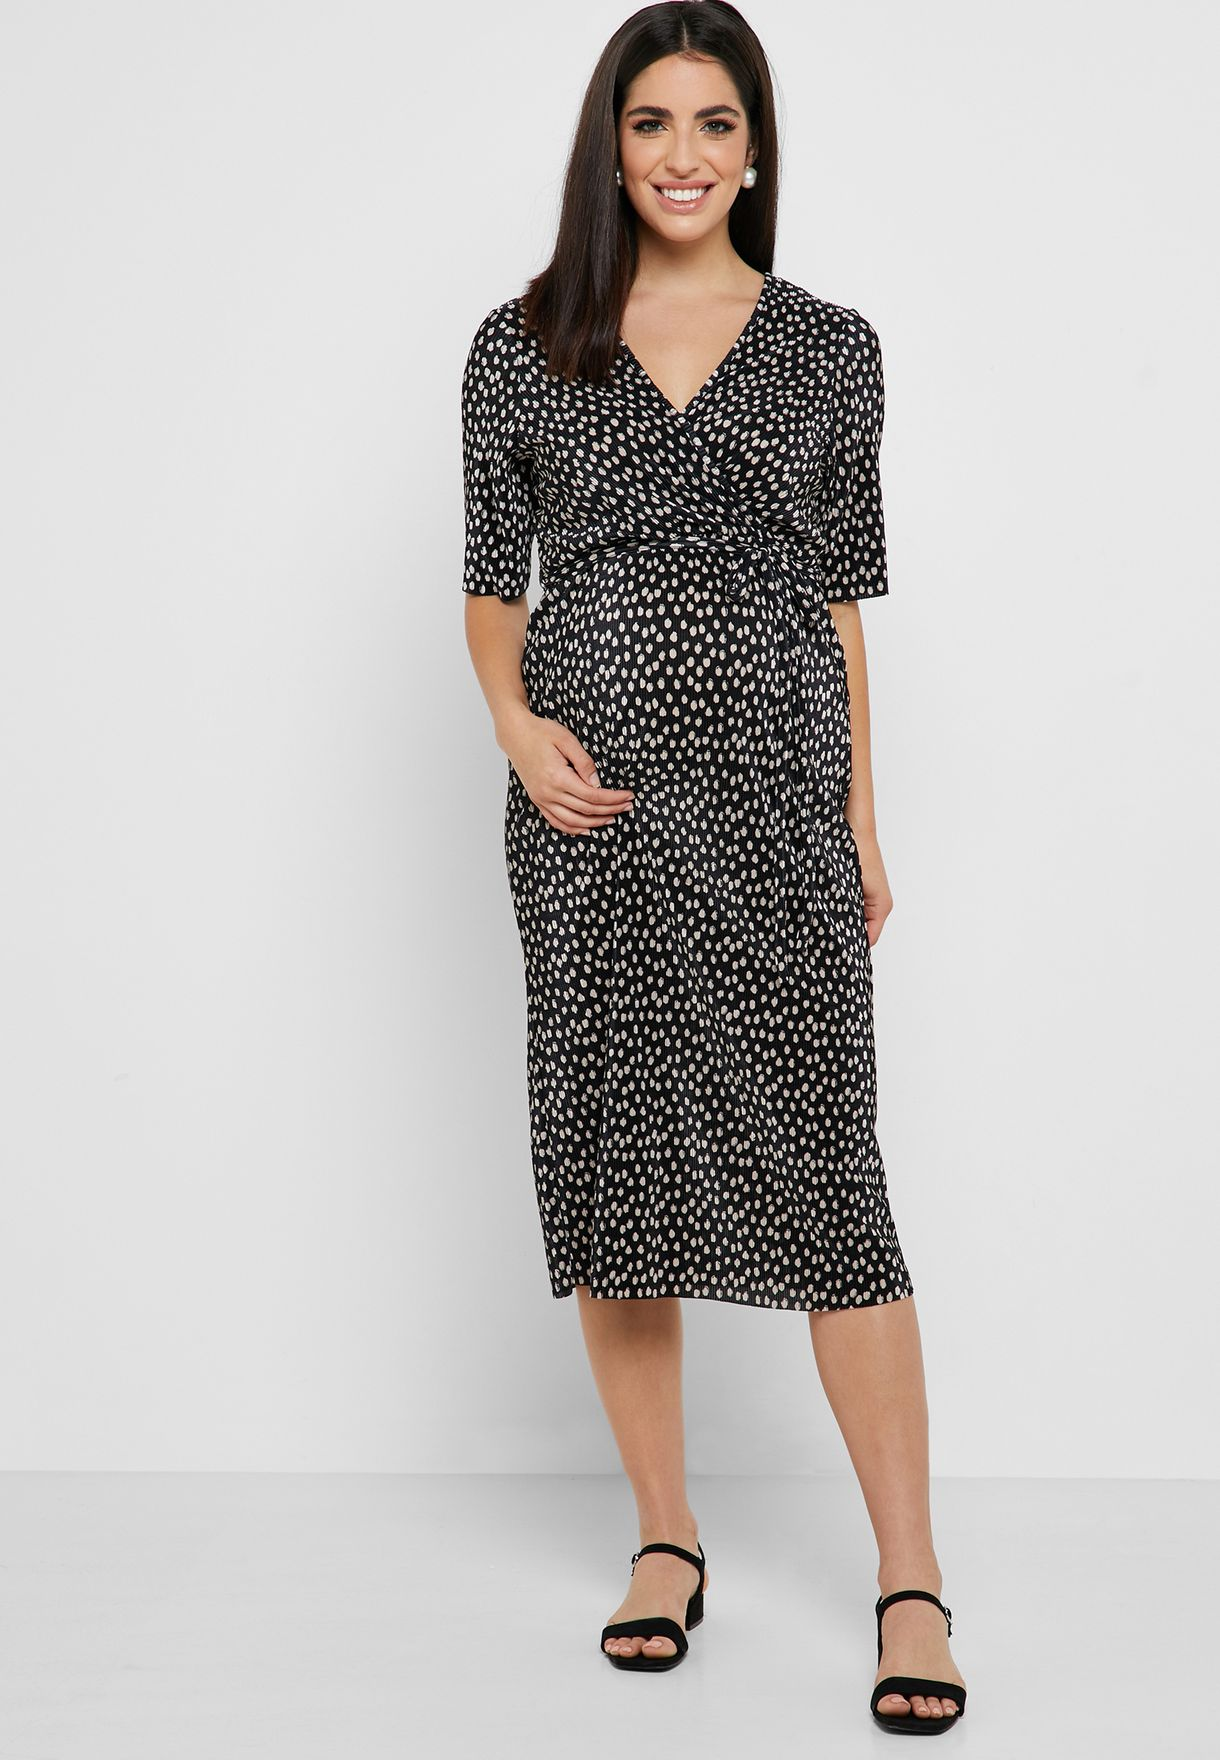 72f0f0f8c43 Shop Dorothy Perkins Maternity prints Spot Print Plisse Wrap Dress ...